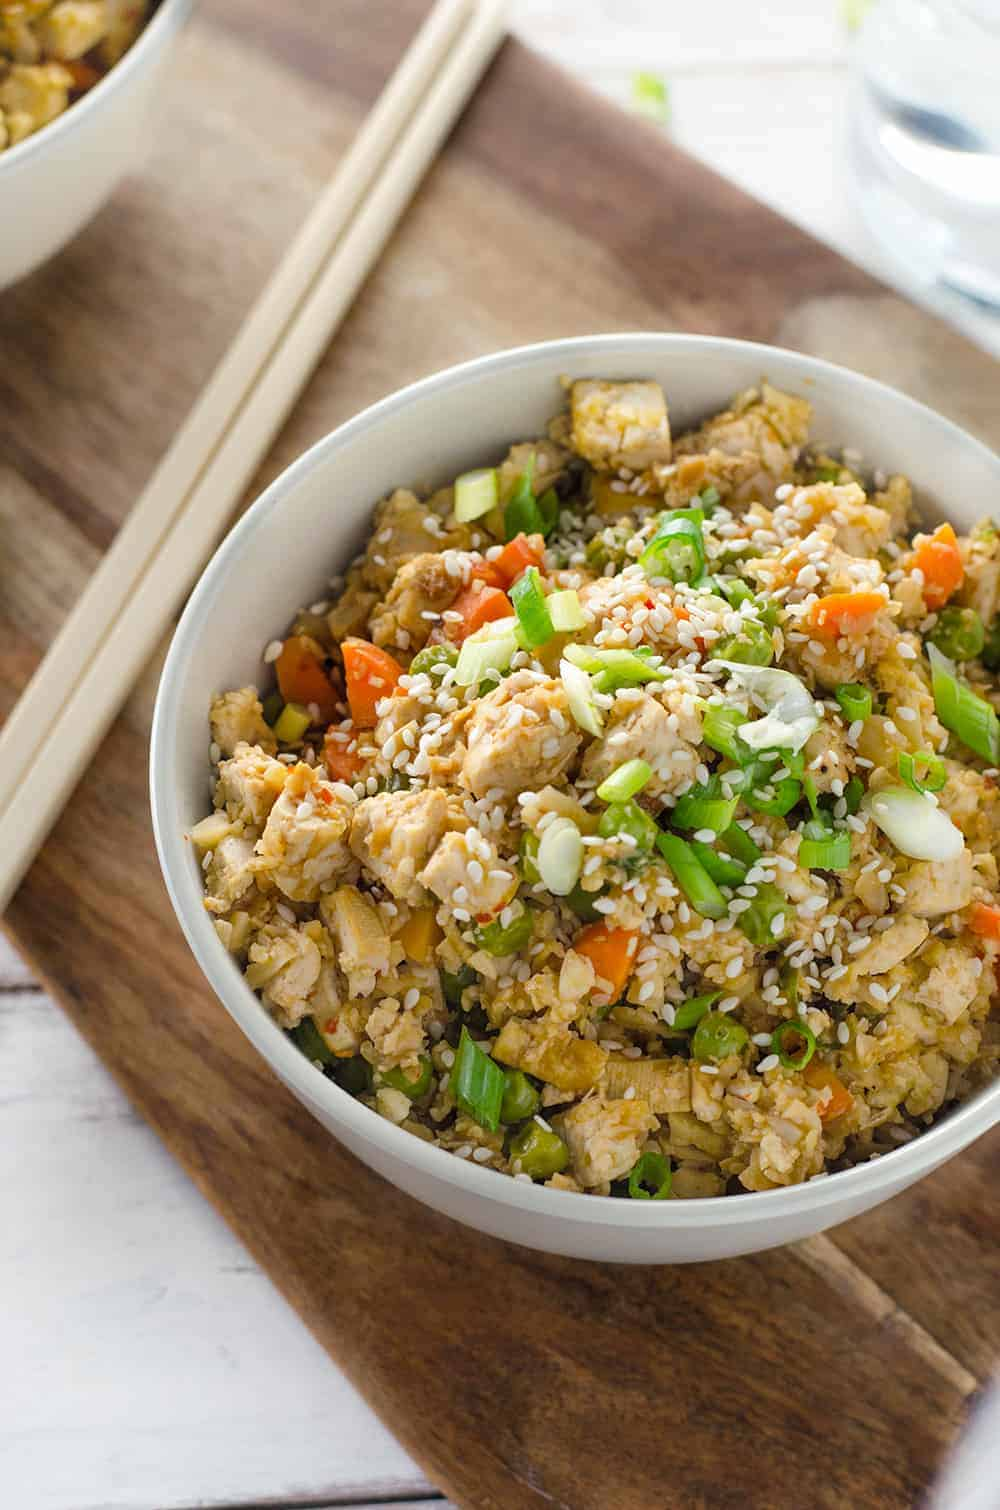 Easy Vegan Cauliflower Fried Rice! Ready in less than 20 minutes, low-calorie, low-fat, low-carb and DELICIOUS! Vegan and Gluten-Free | www.delishknowledge.com